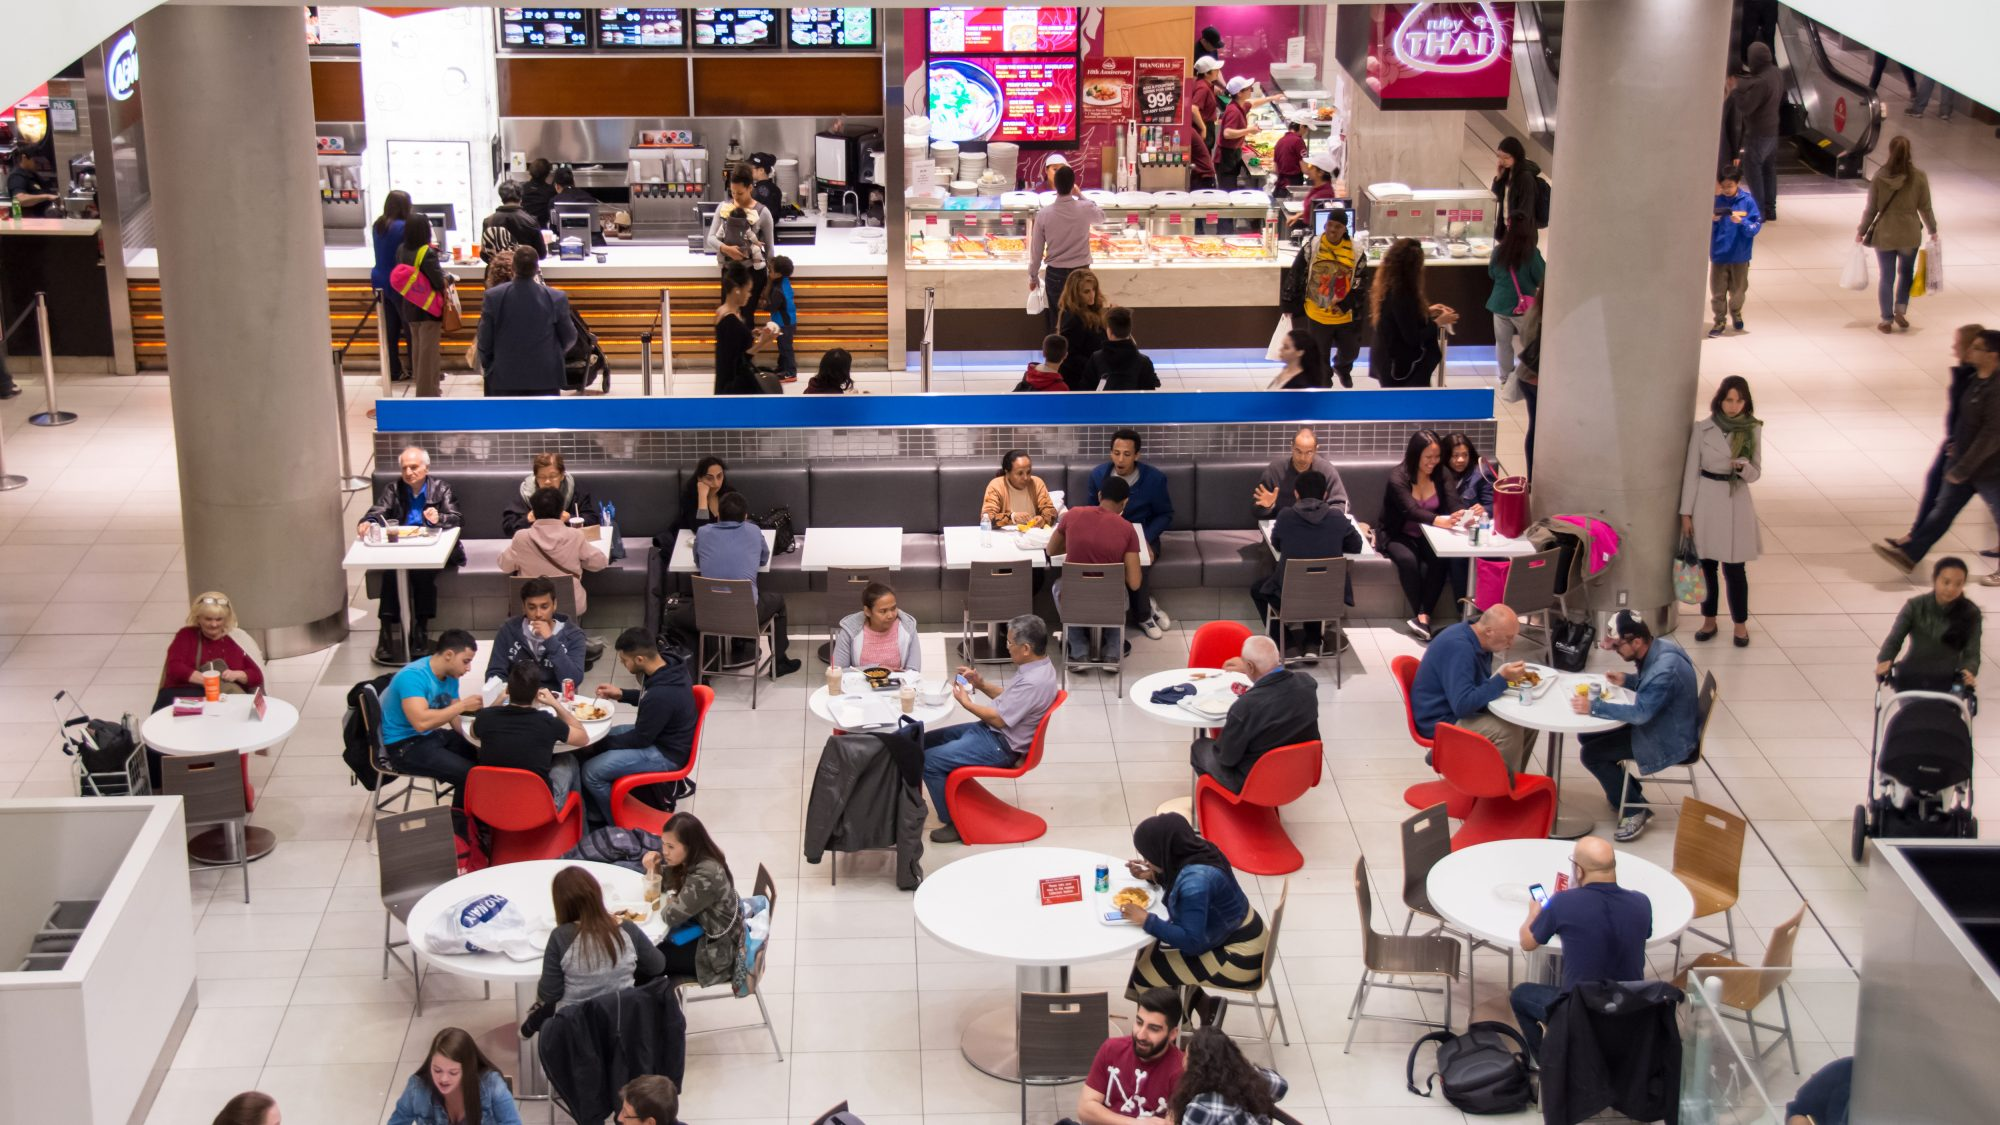 mall-food-courts-FT-BLOG0816.jpg